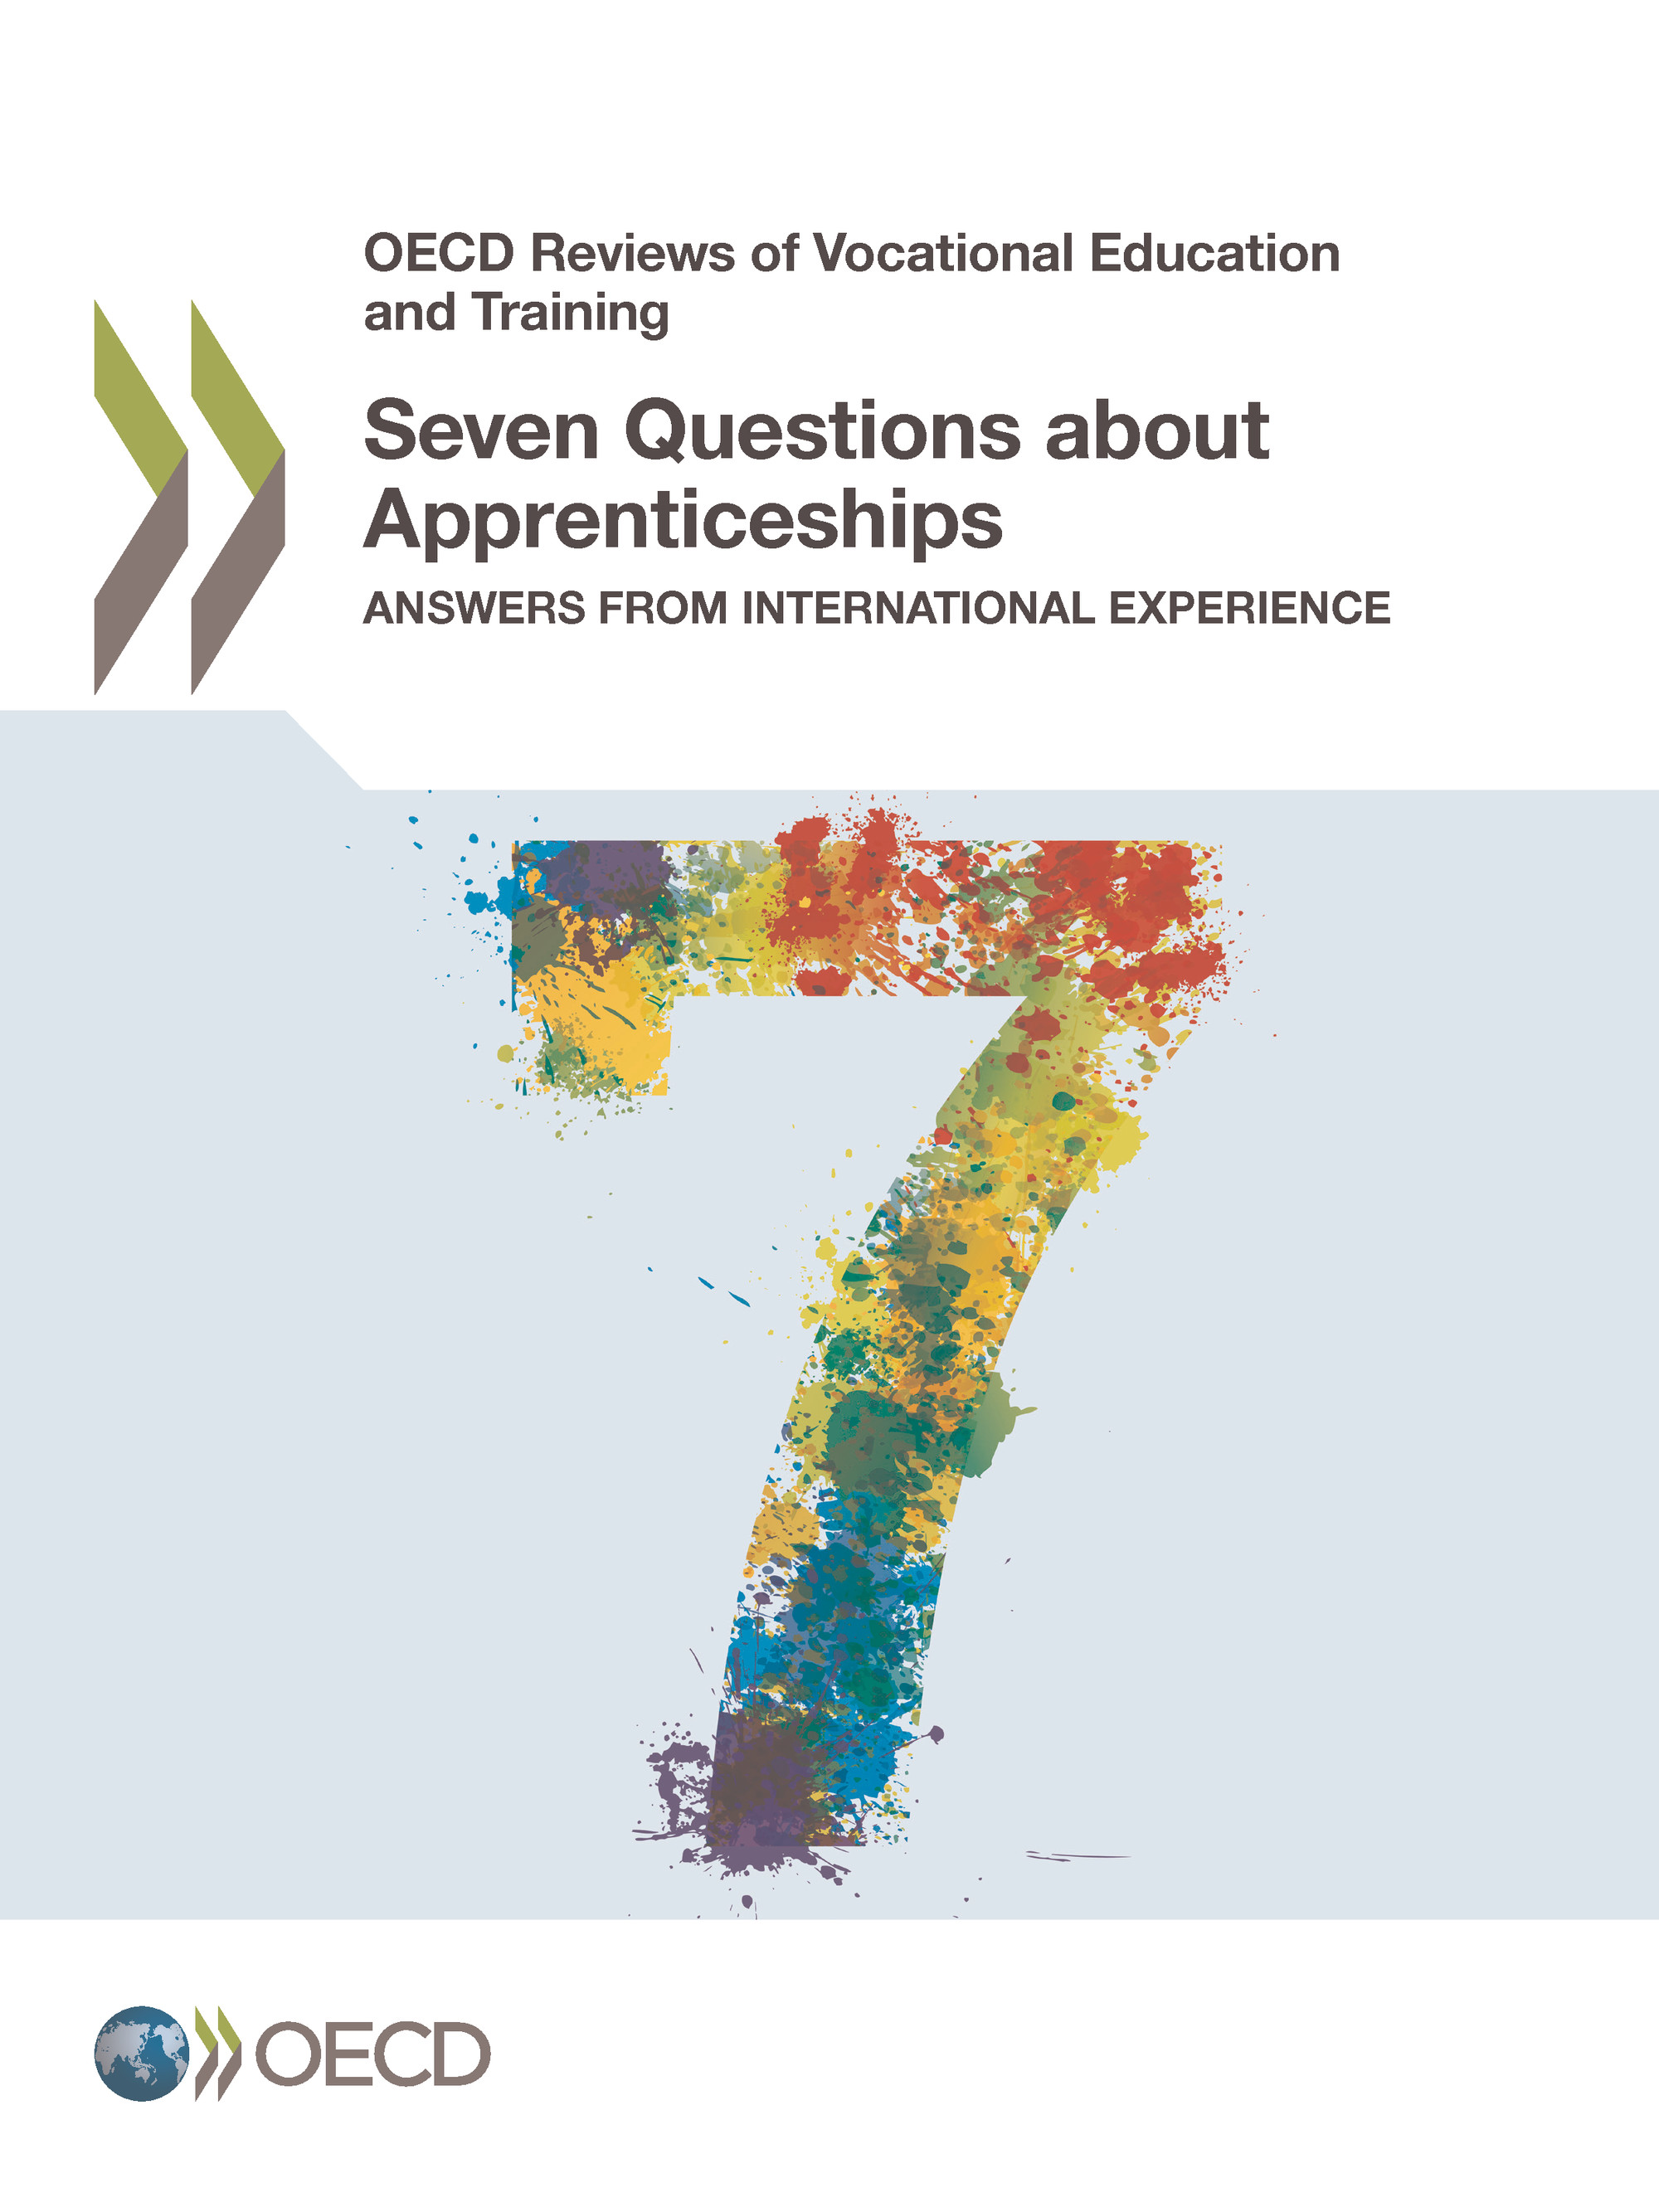 Seven Questions about Apprenticeships De  Collectif - OCDE / OECD